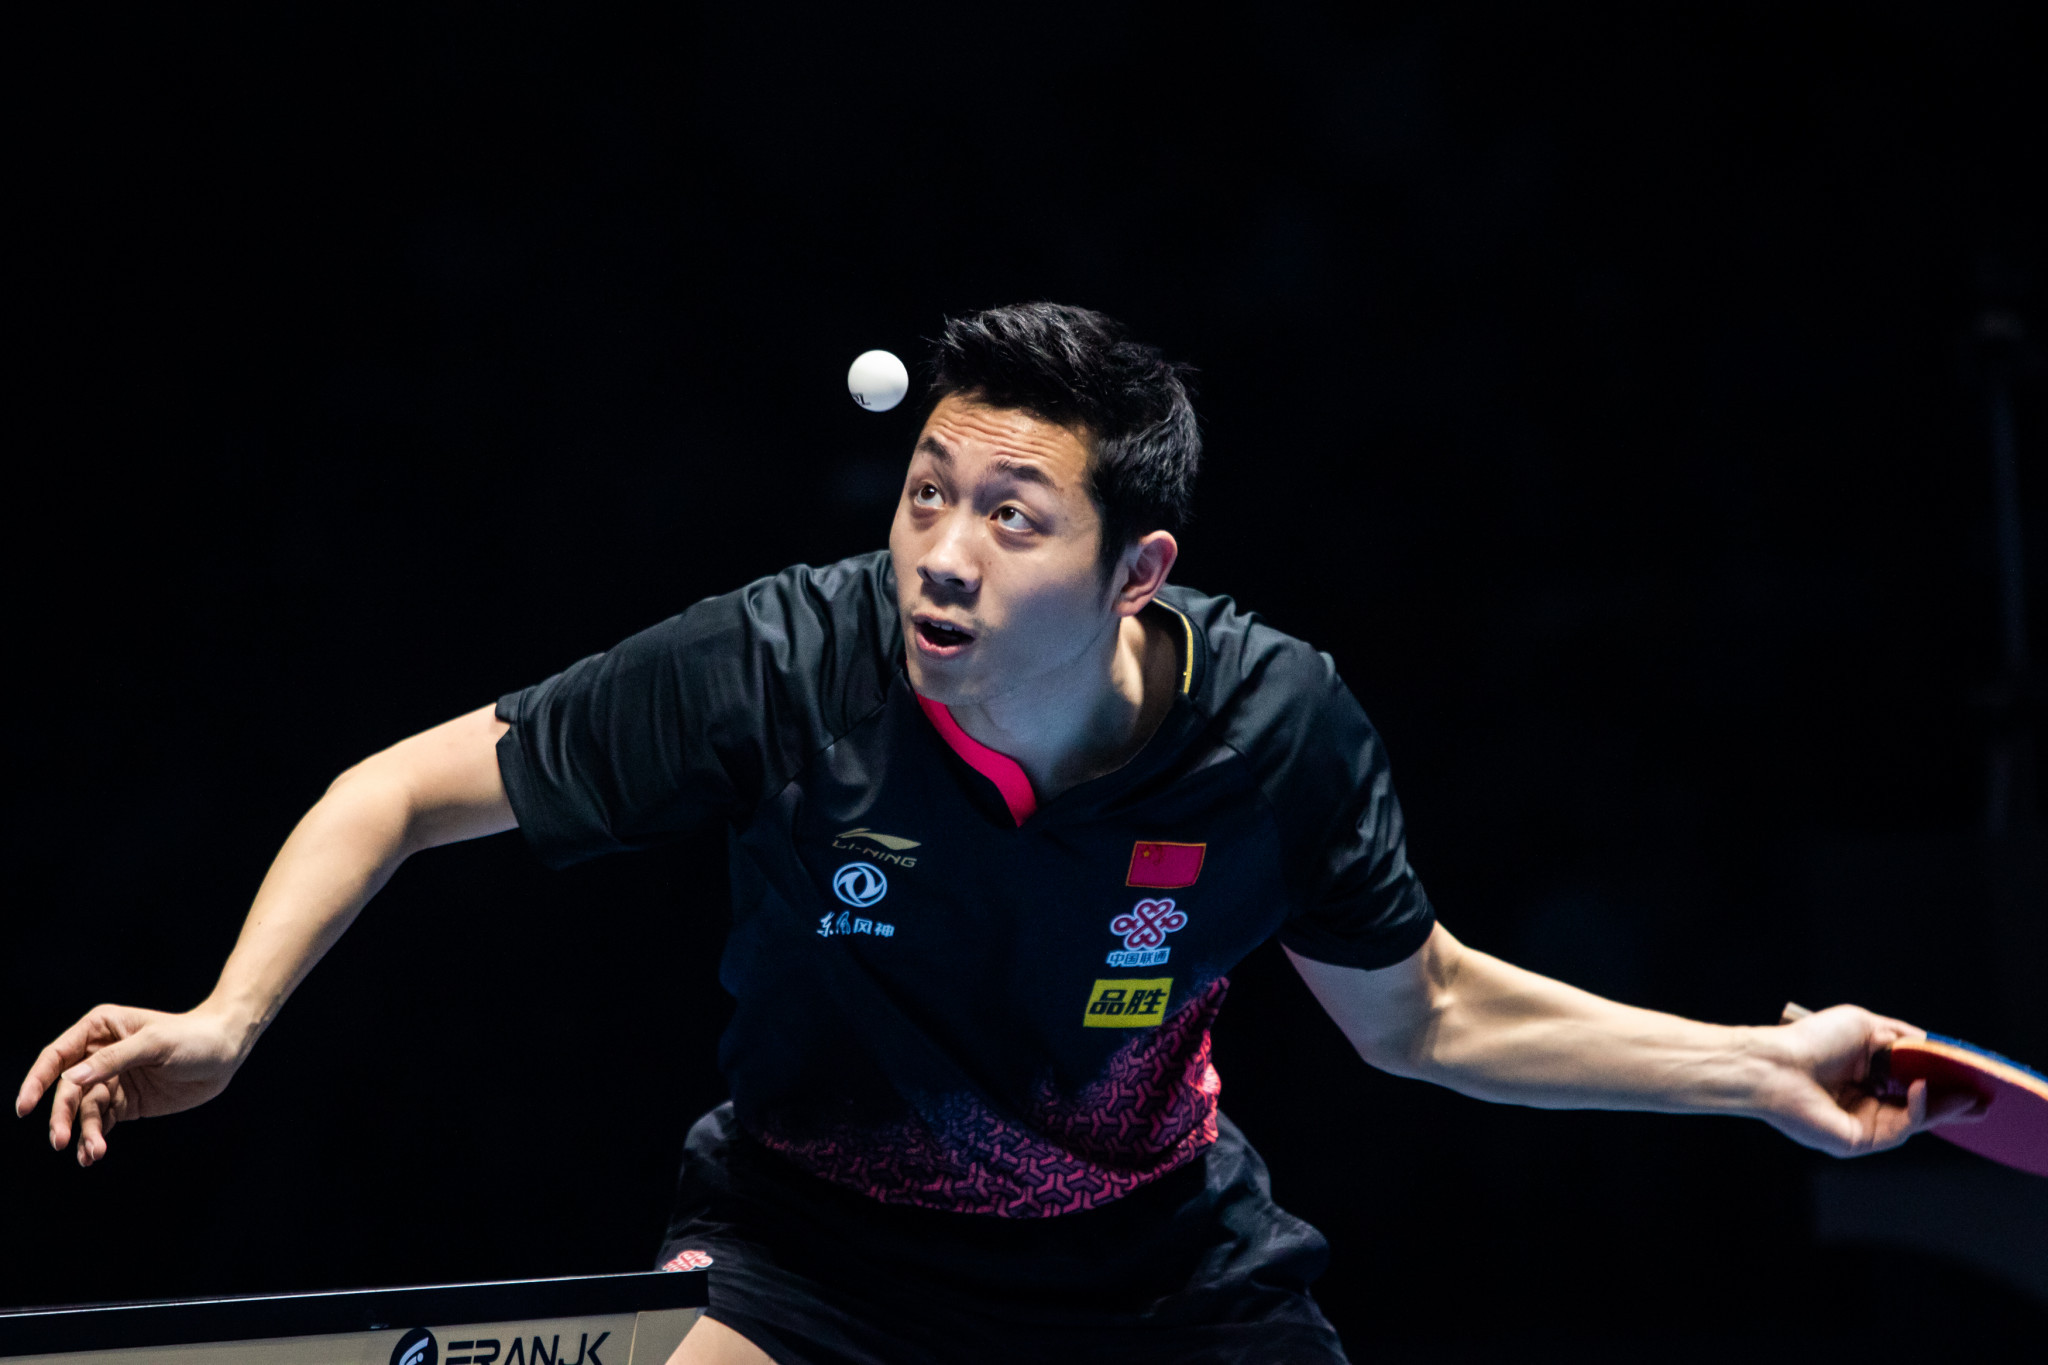 Xu defeats young talent Lin to win Singapore Seamaster T2 Diamond 2019